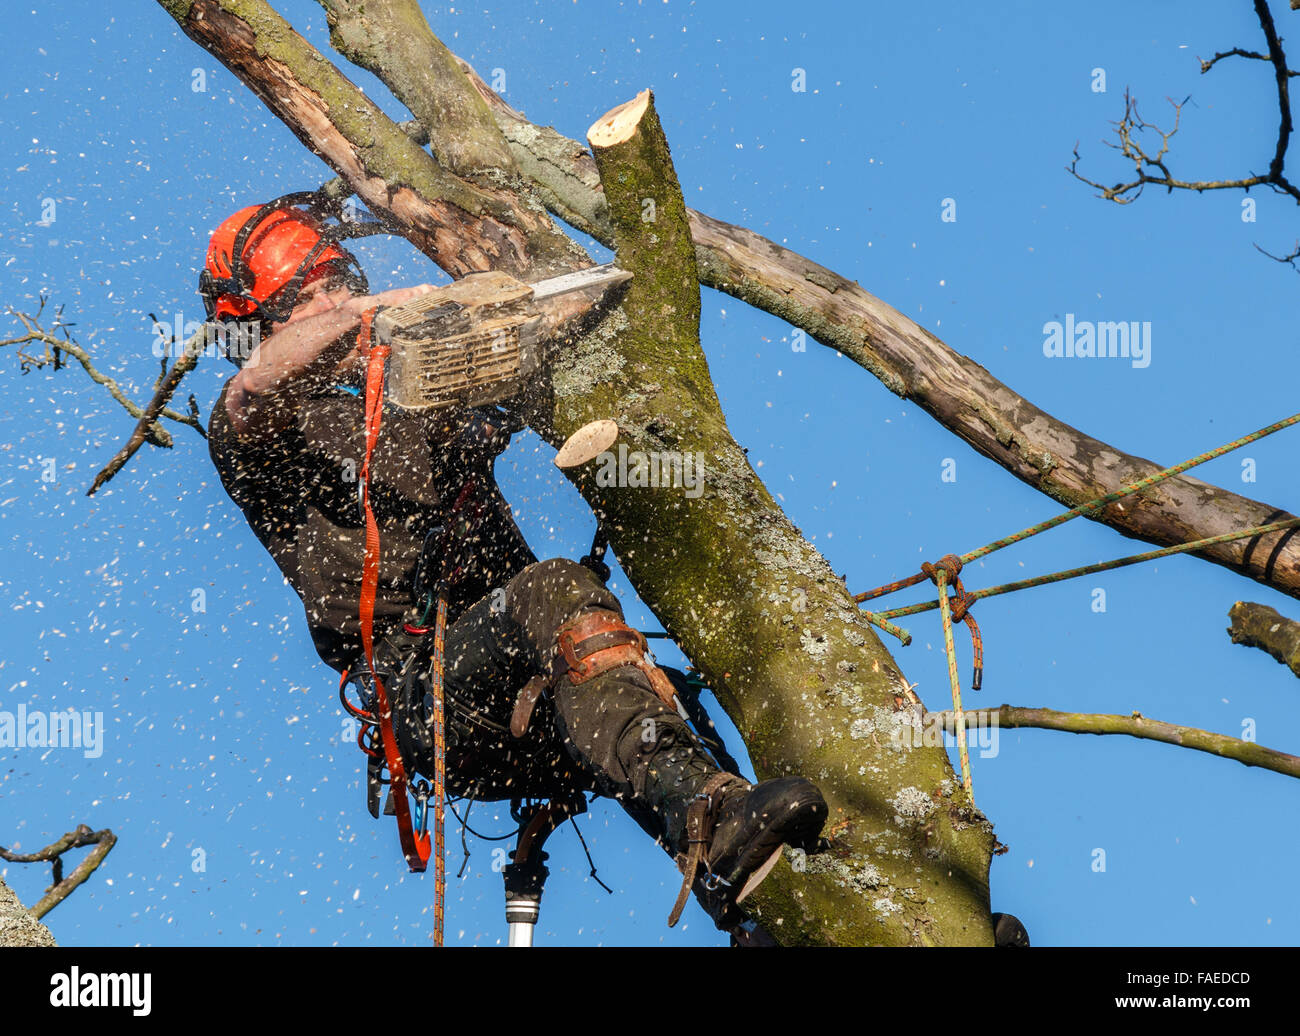 Chainsaw in use by a tree surgeon high up in a tree being felled.  Sawdust and chippings are flying. A tree branch - Stock Image